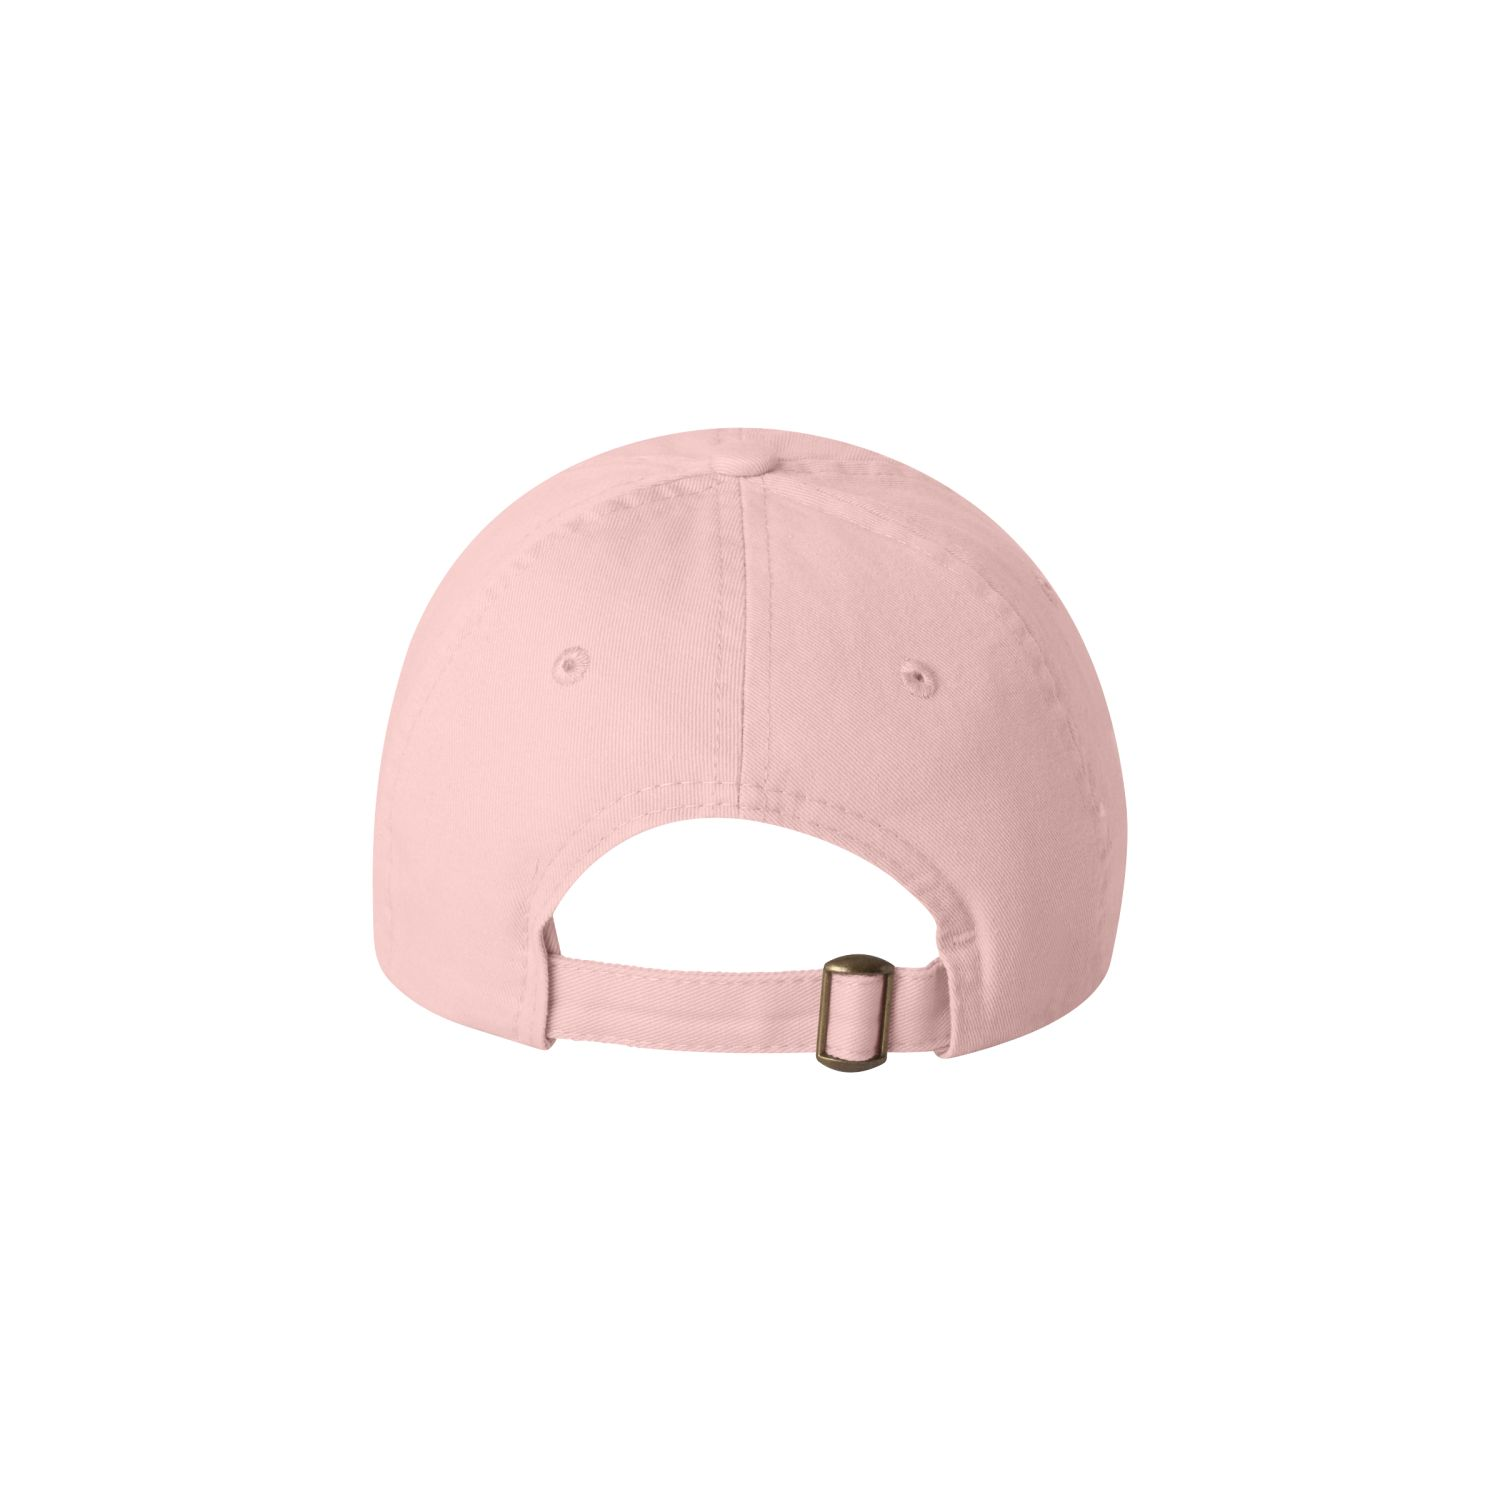 710f749829b7f Customer feedback for this store 7 past orders · 0 customer ratings.  Details  Shipping   FAQs. Playboy Bunny Unstructured Dad Cap ...